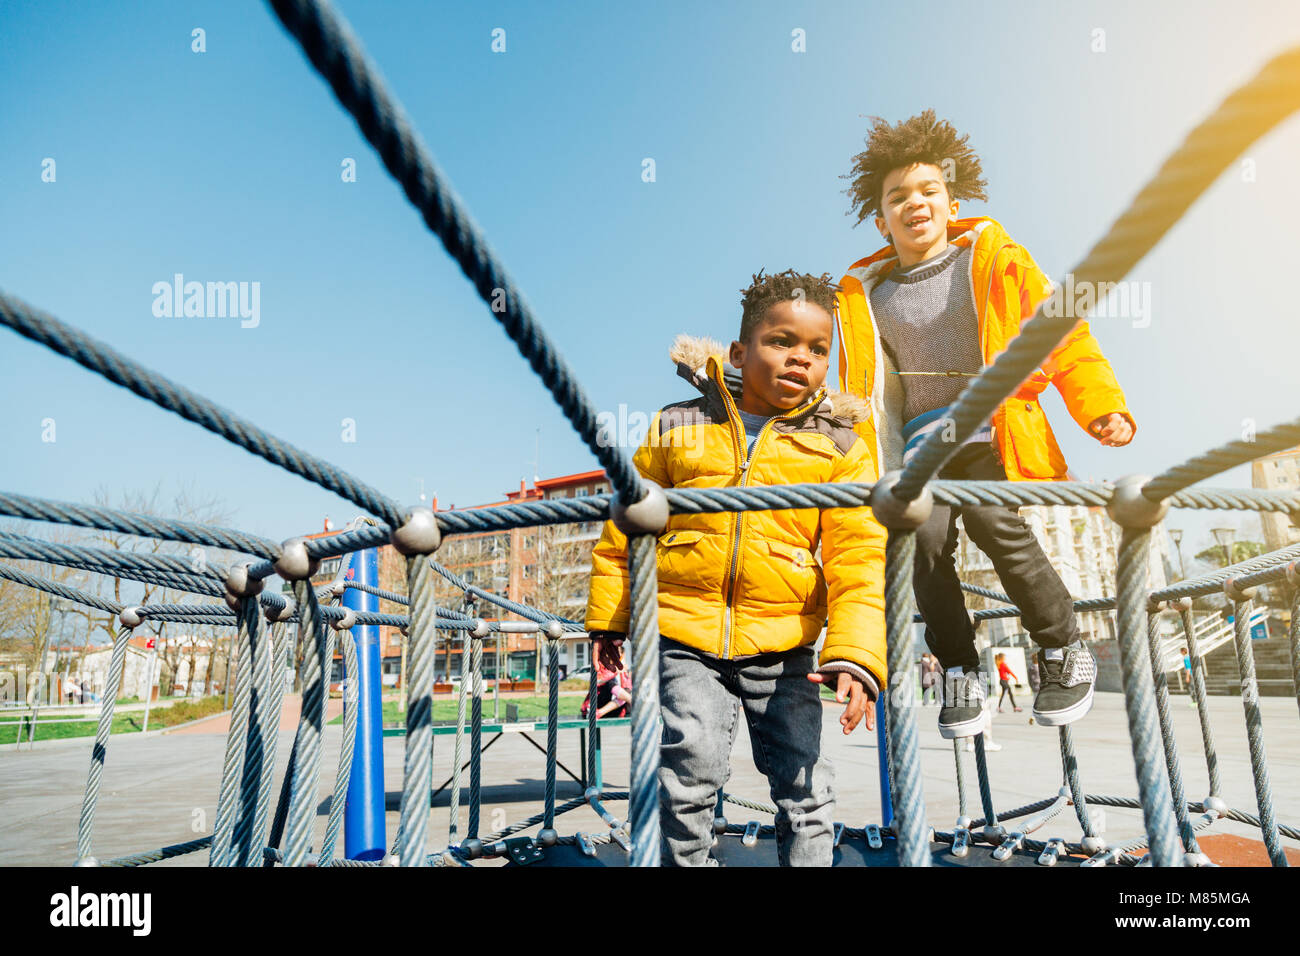 Two children with yellow coats jumping on elastic bed in a playground in a sunny day Stock Photo